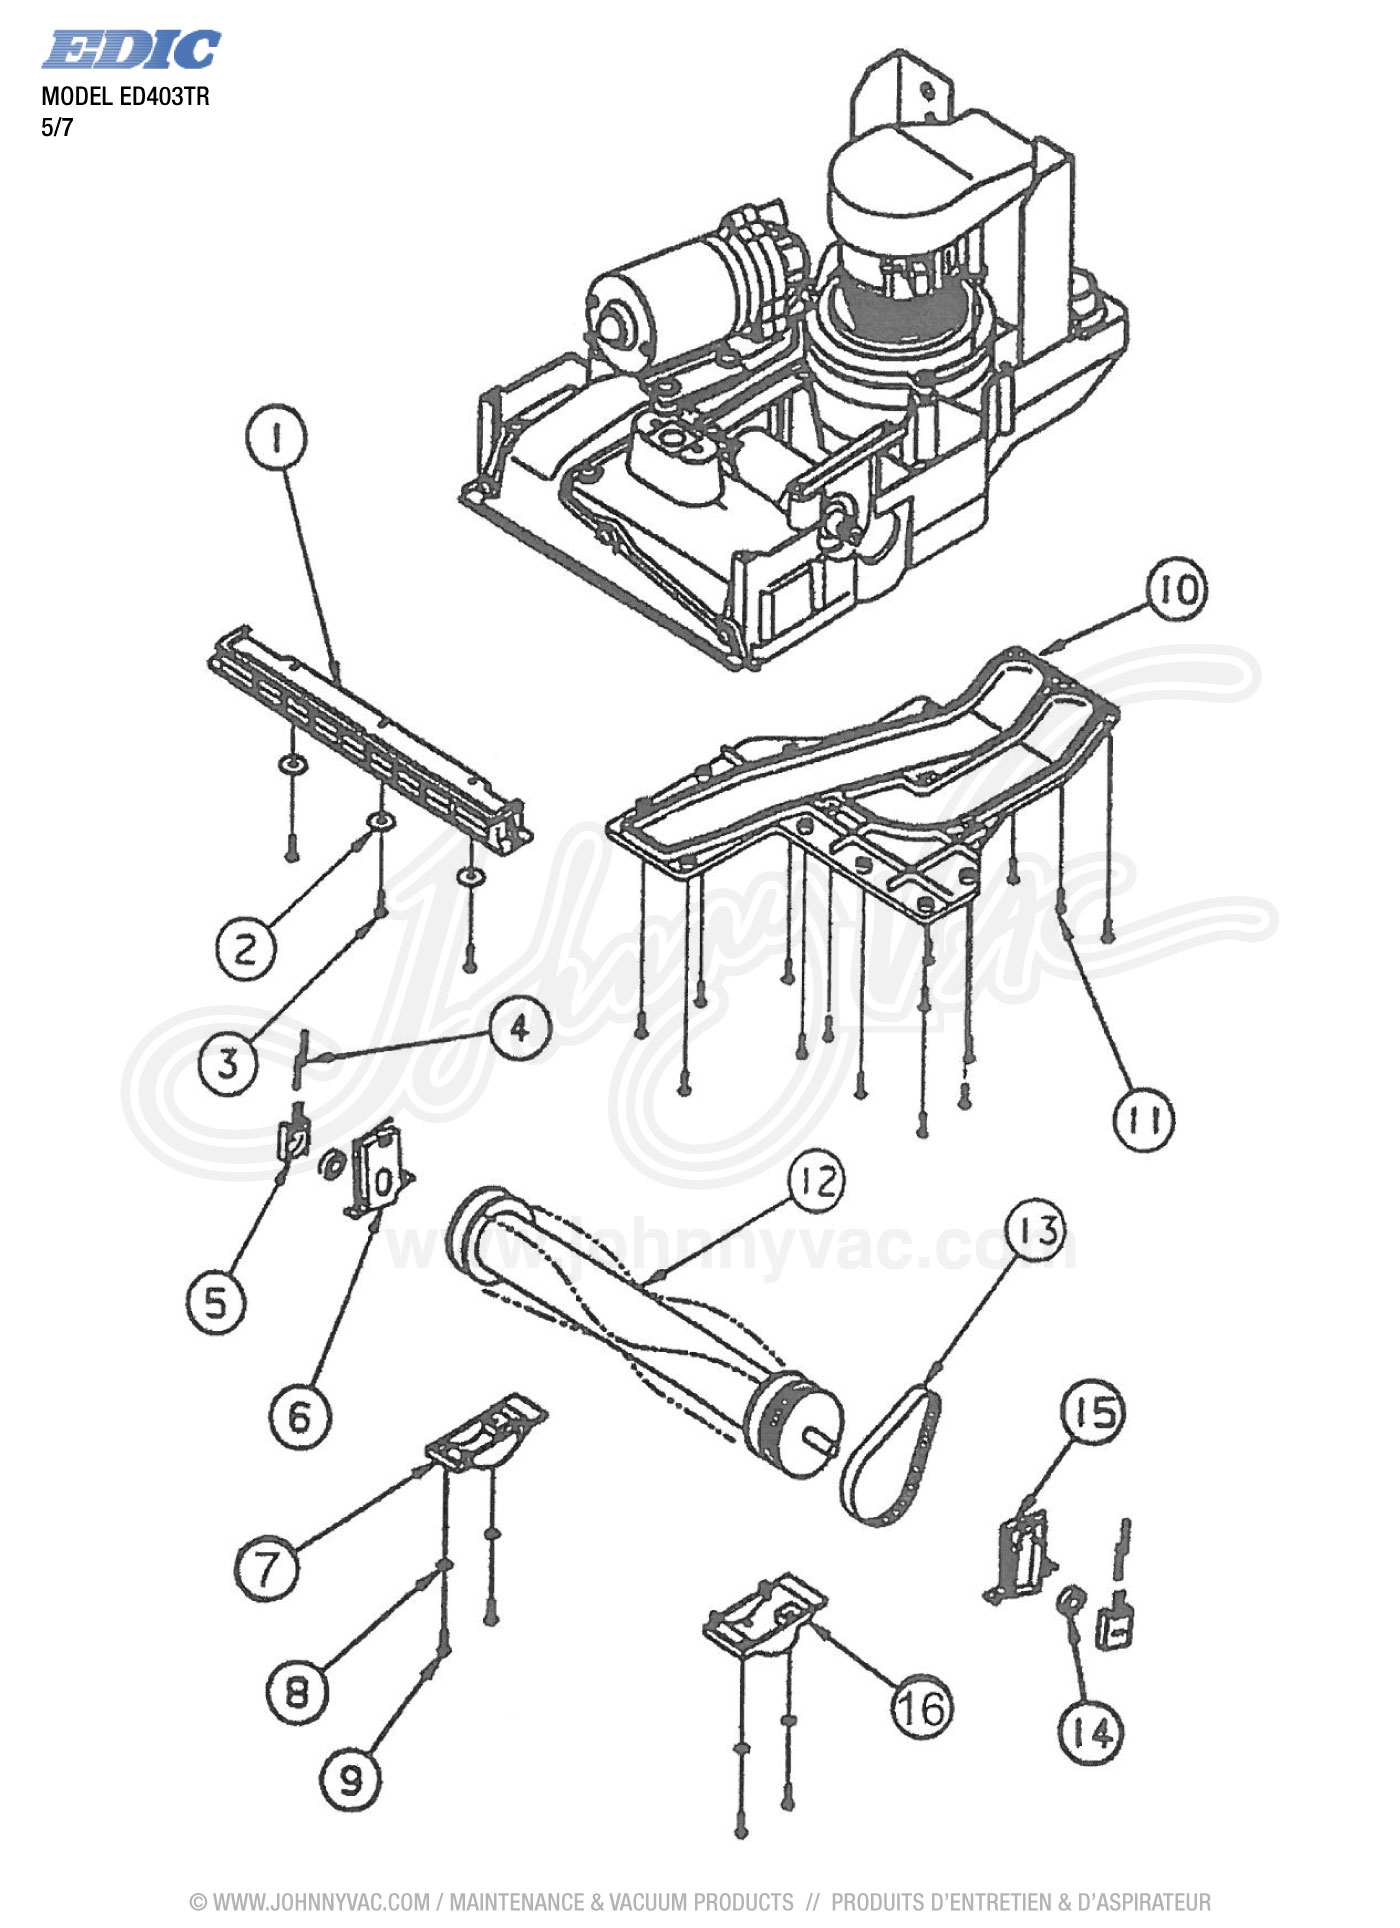 Vacuum schematic exploded view for ed403tr model s ed403tr